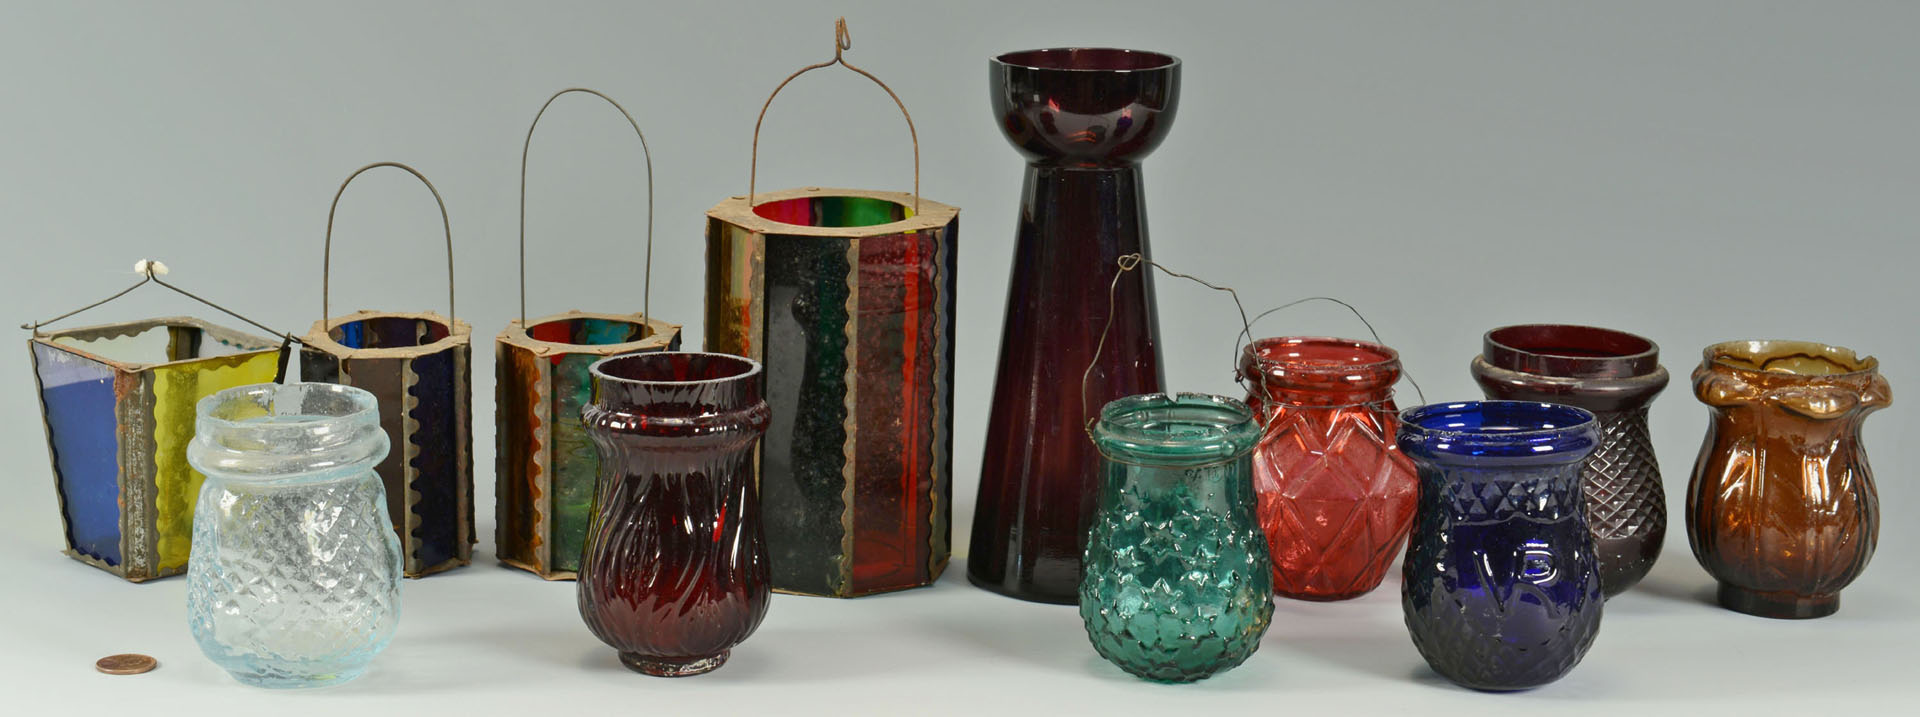 12 Colored Christmas lights, lanterns, and vase